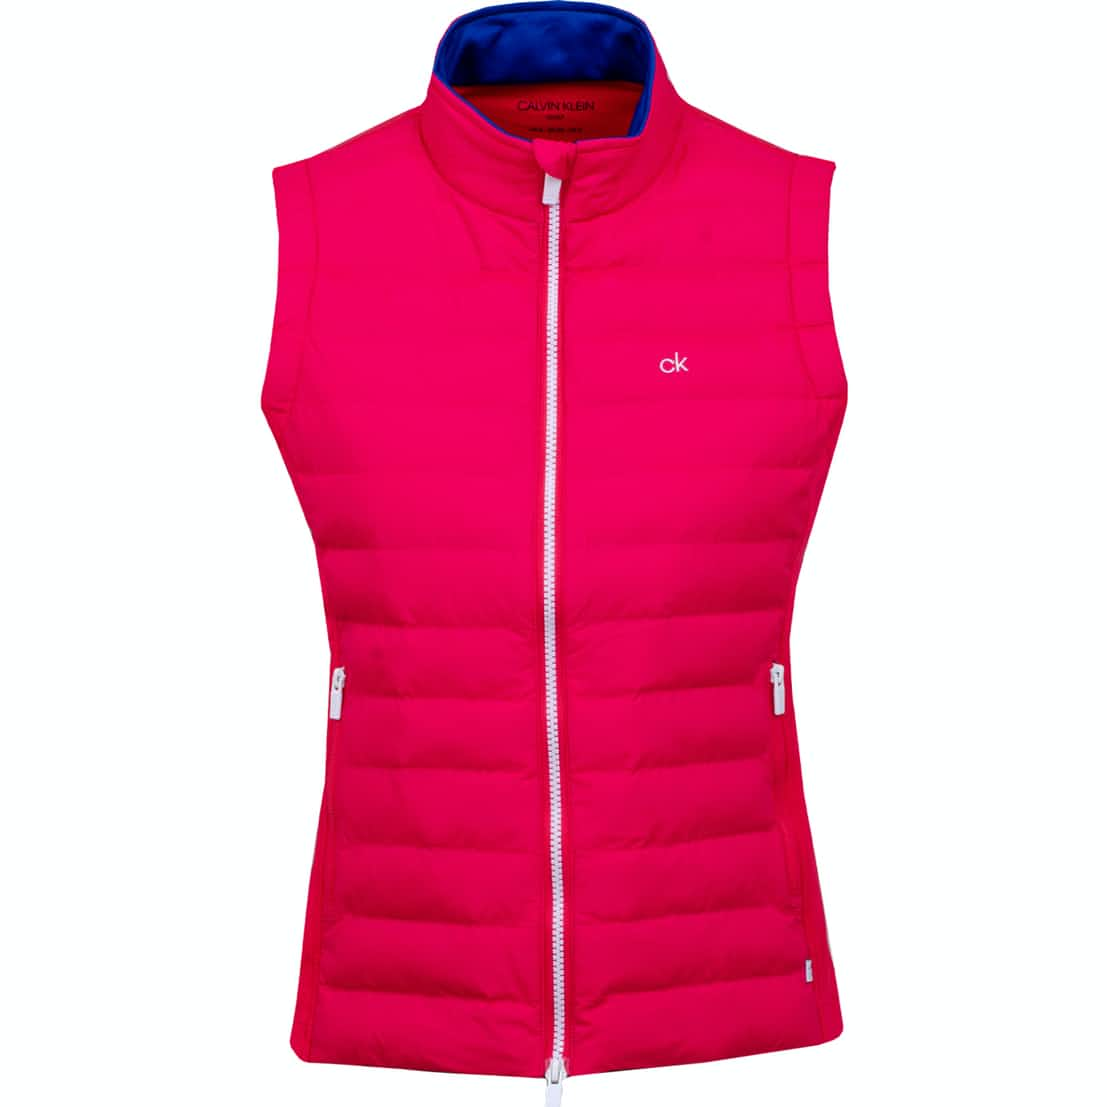 Womens 39N Gilet Punch Pink/White - SS19